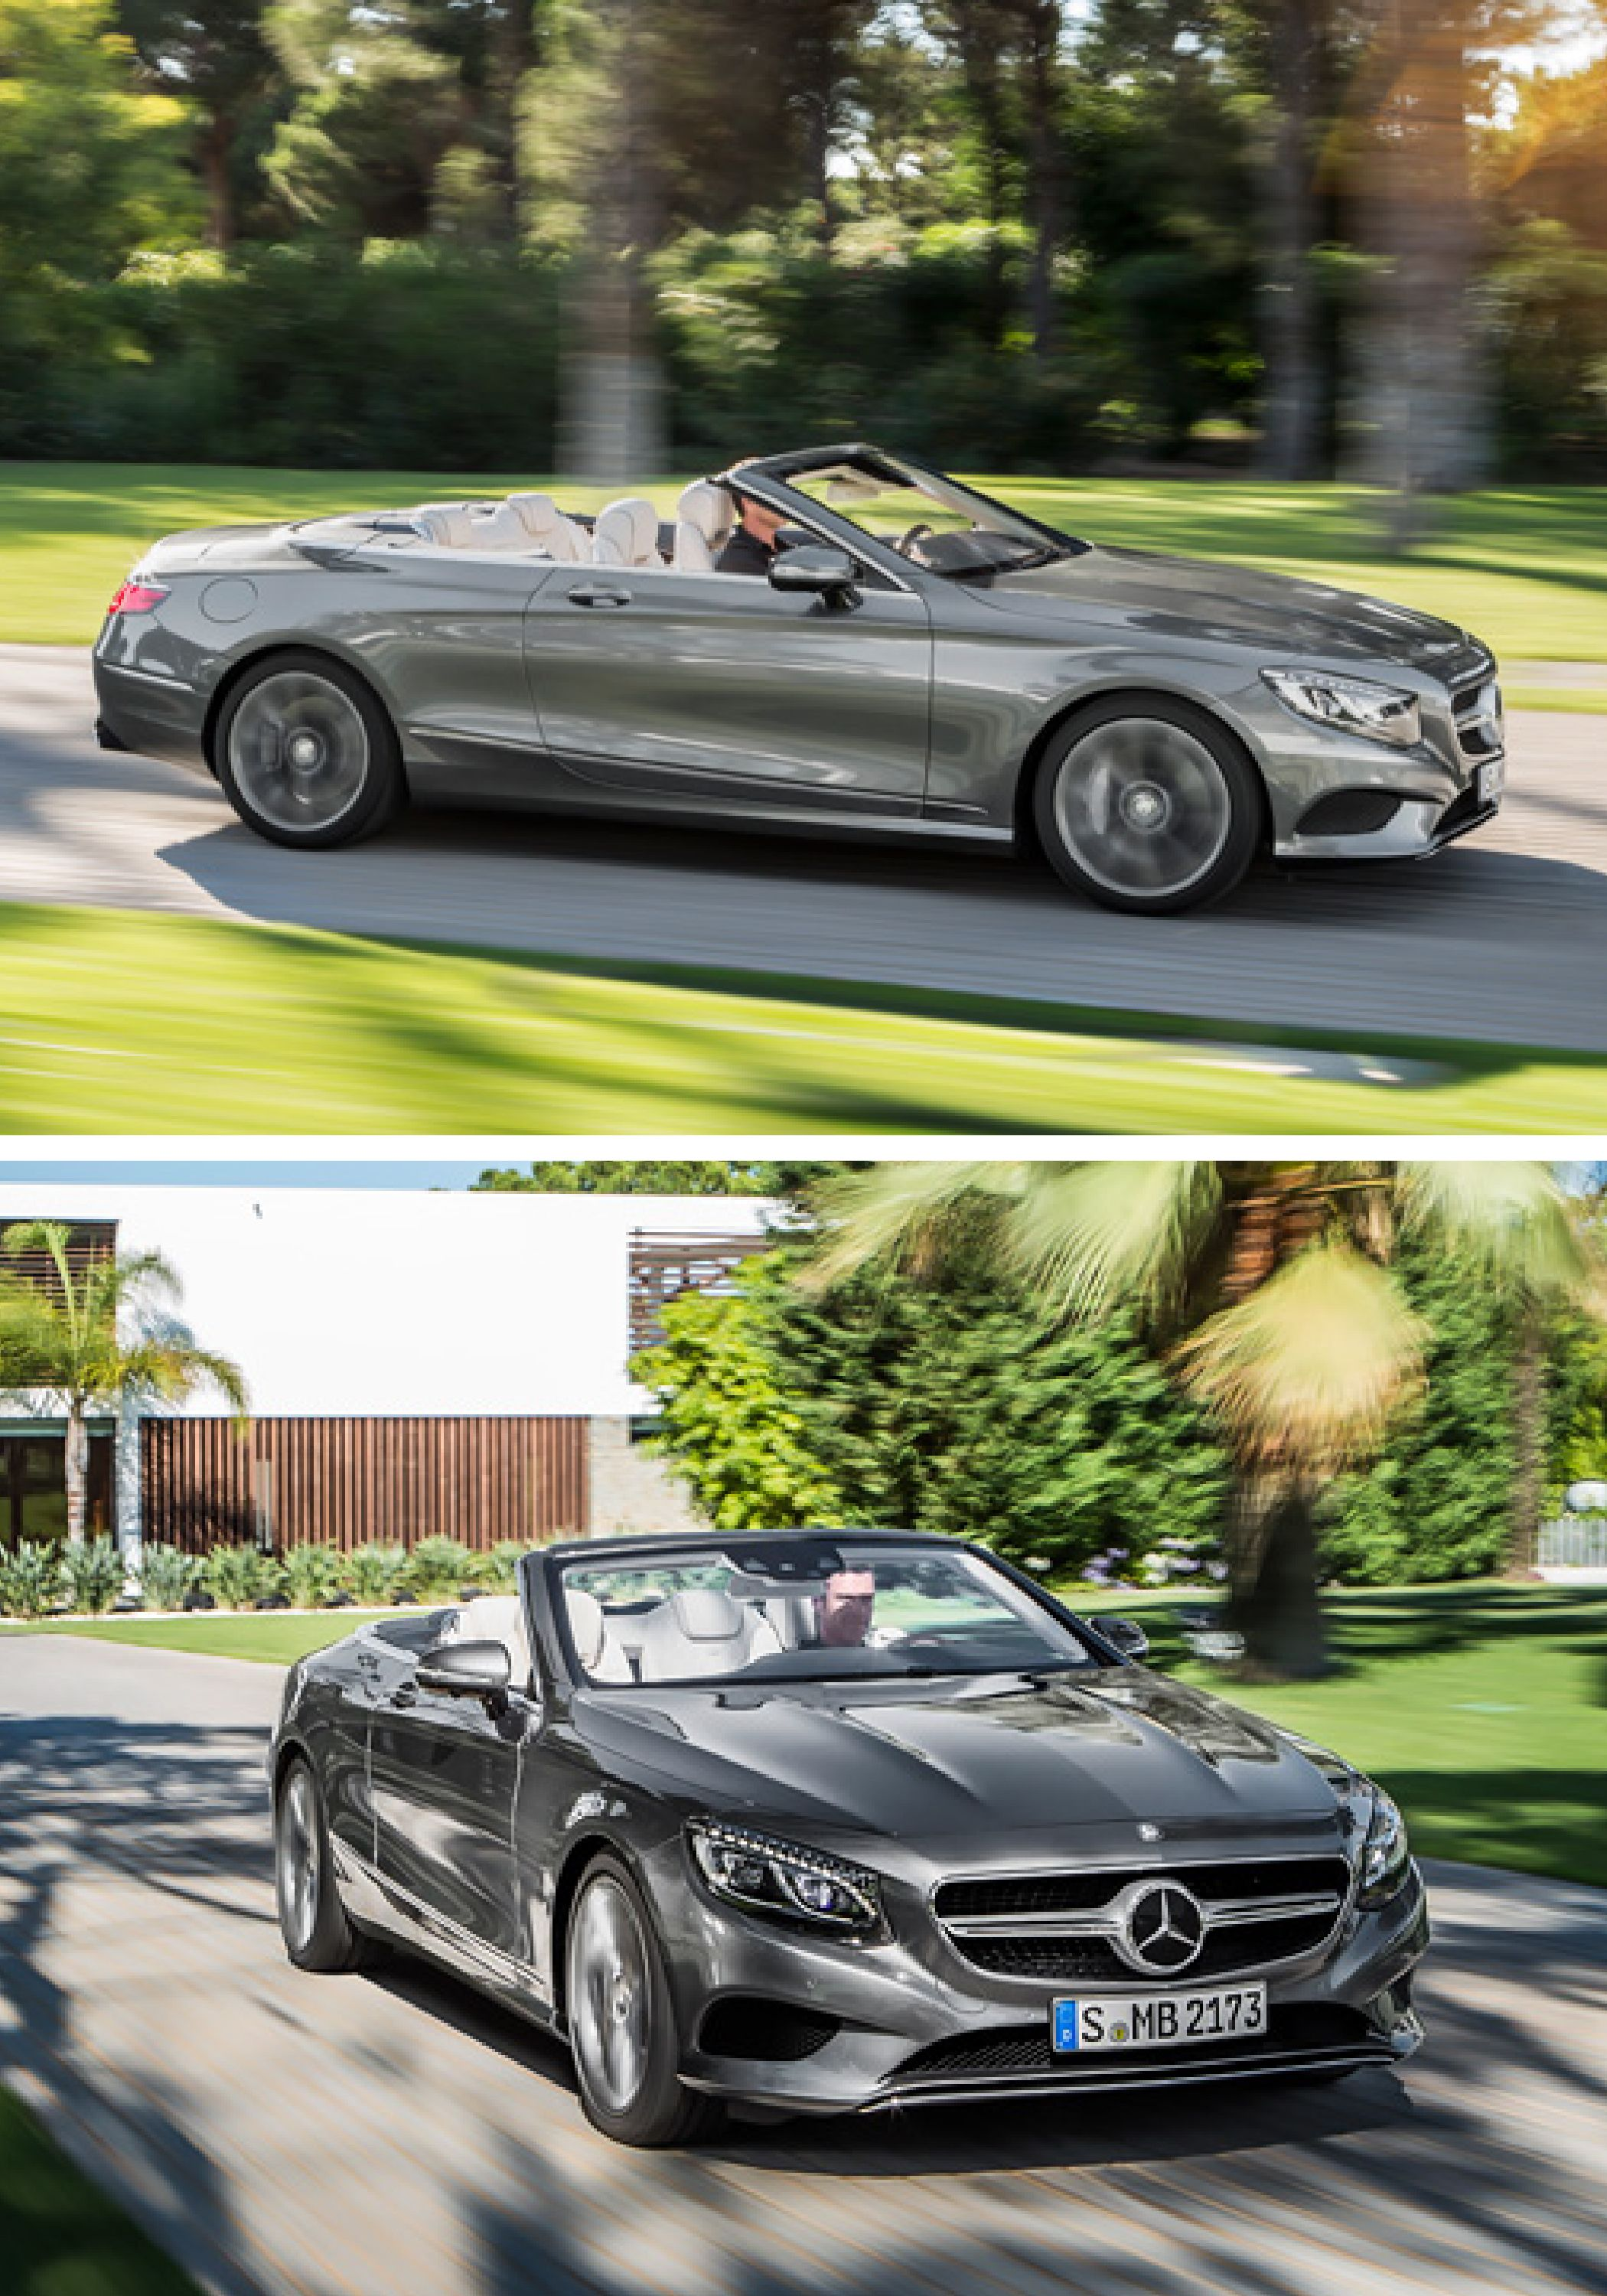 hight resolution of check out the sixth variant of the current s class family and the first open top luxury four seater from mercedes benz